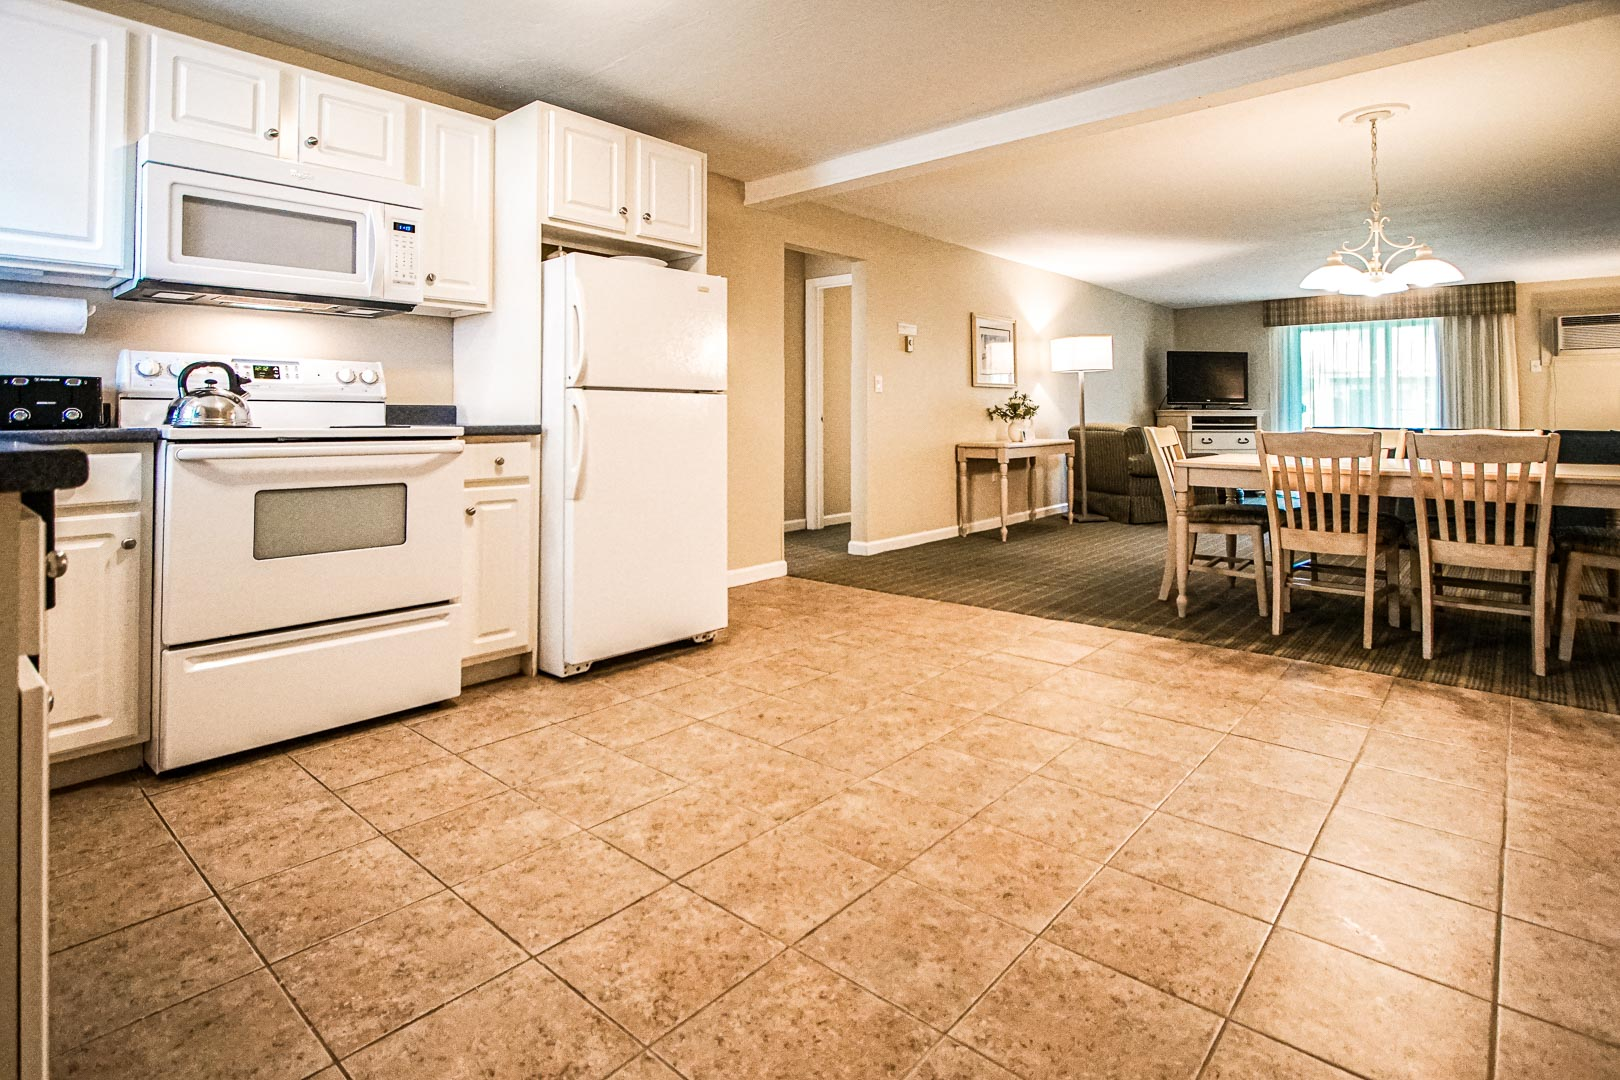 A spacious kitchen area at VRI's Cape Winds Resort in Massachusetts.